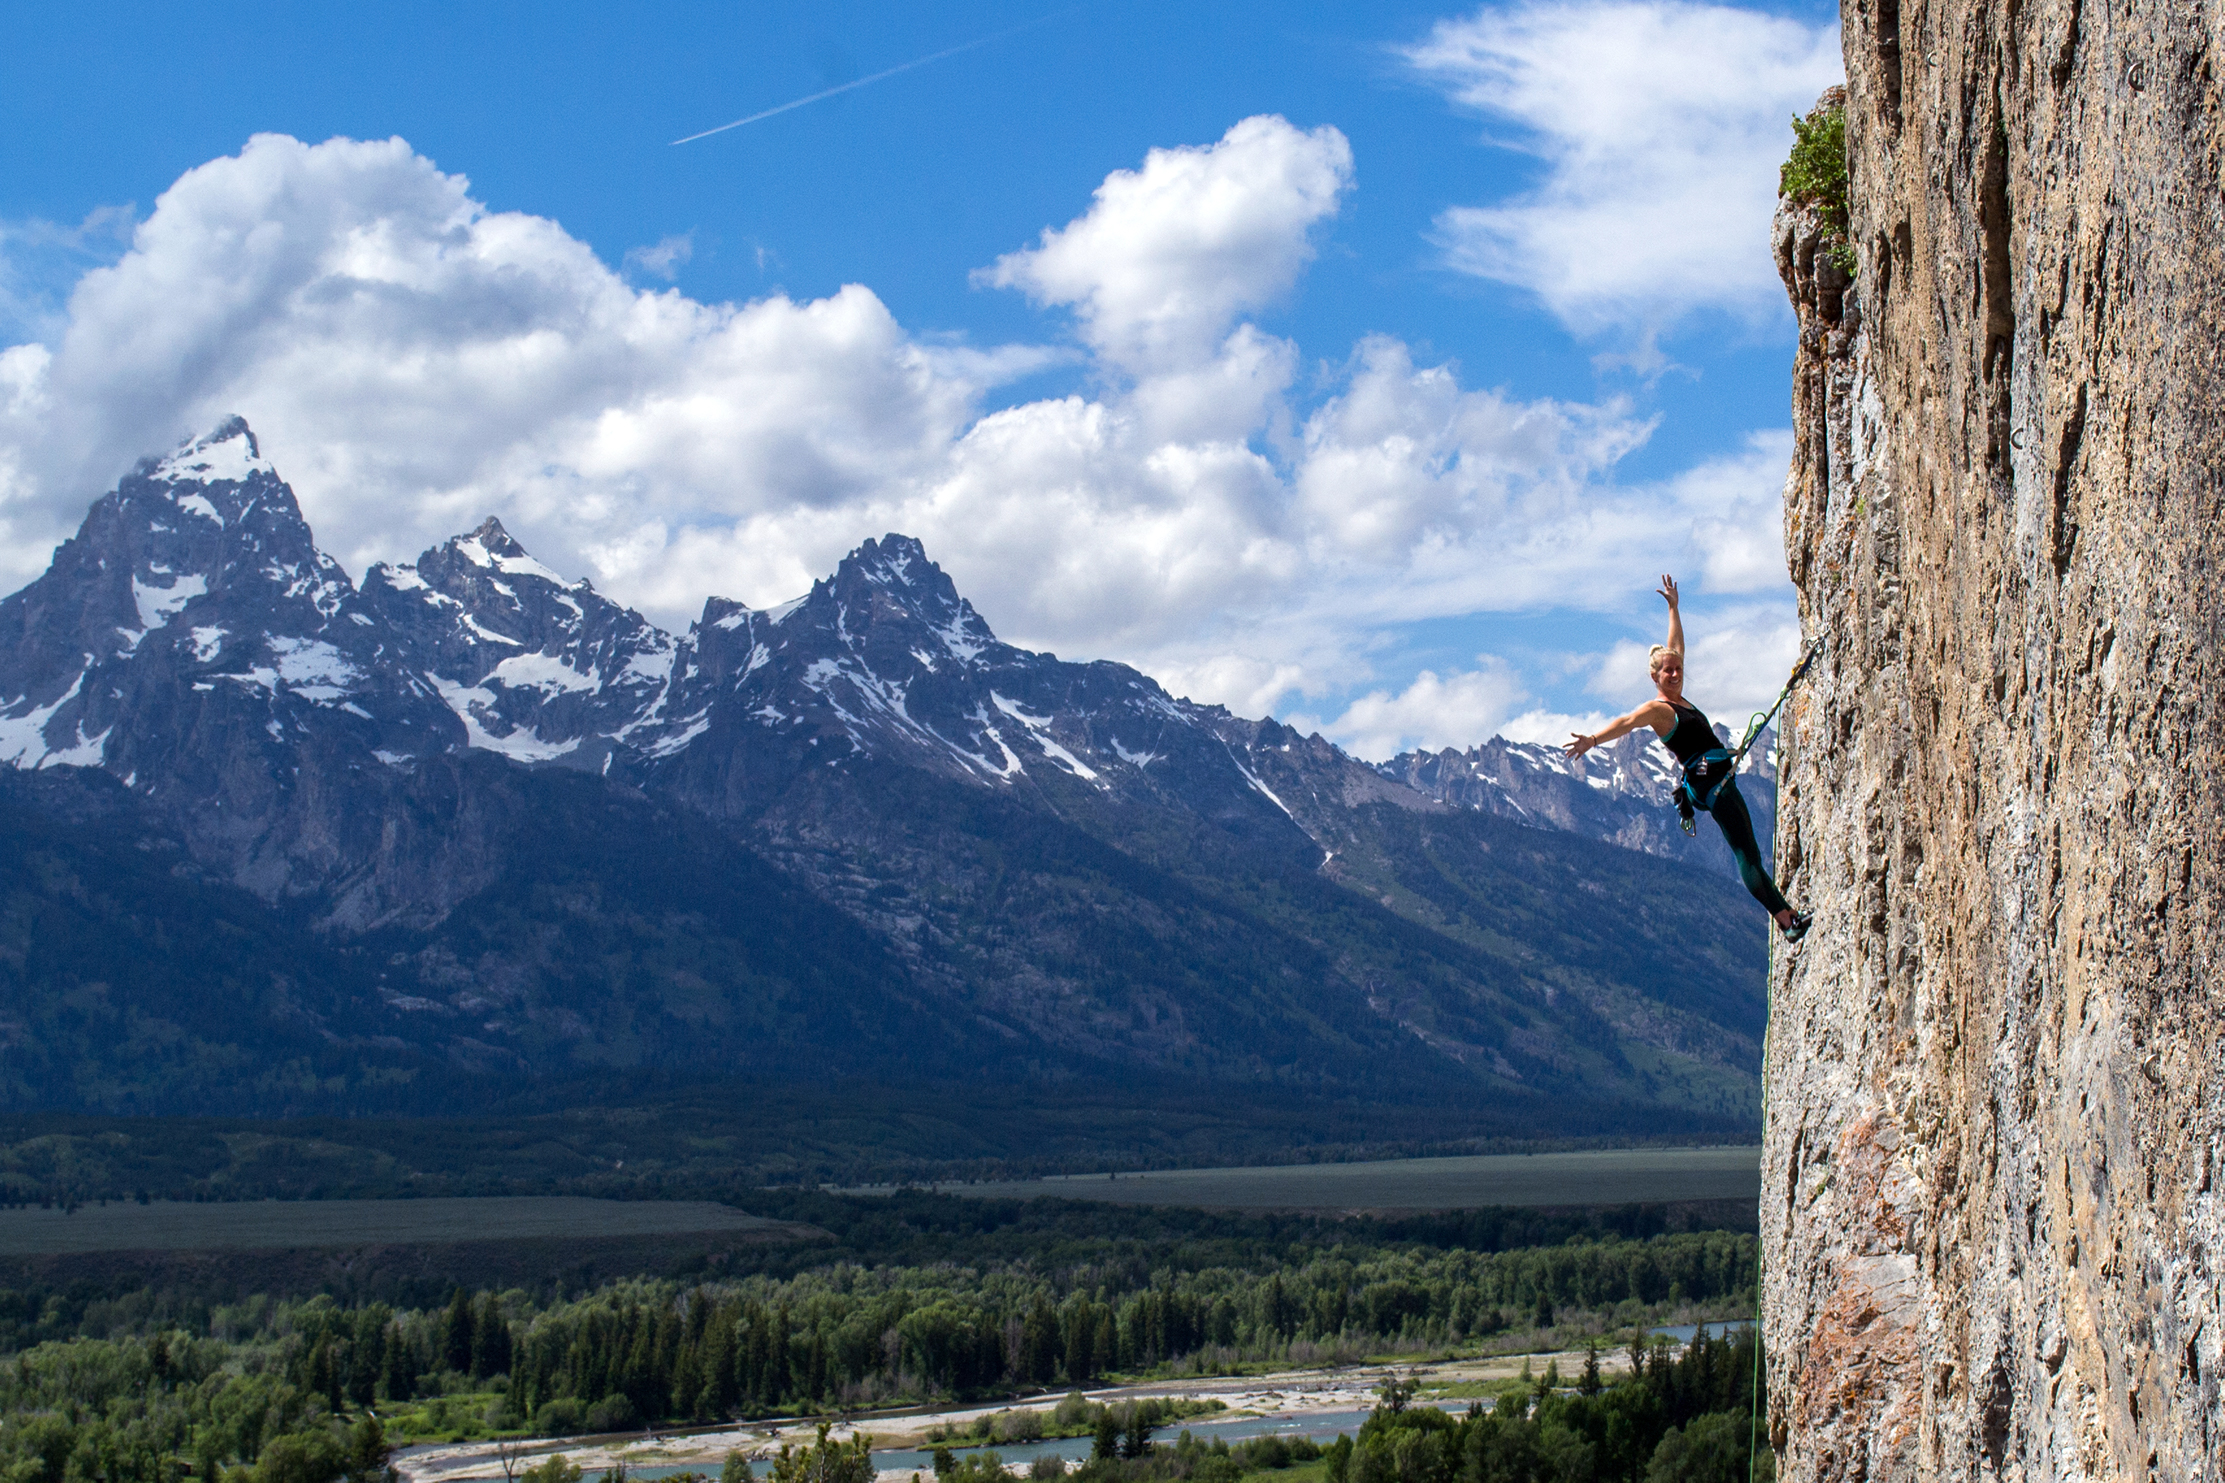 Female climber showing off with a view of the Tetons